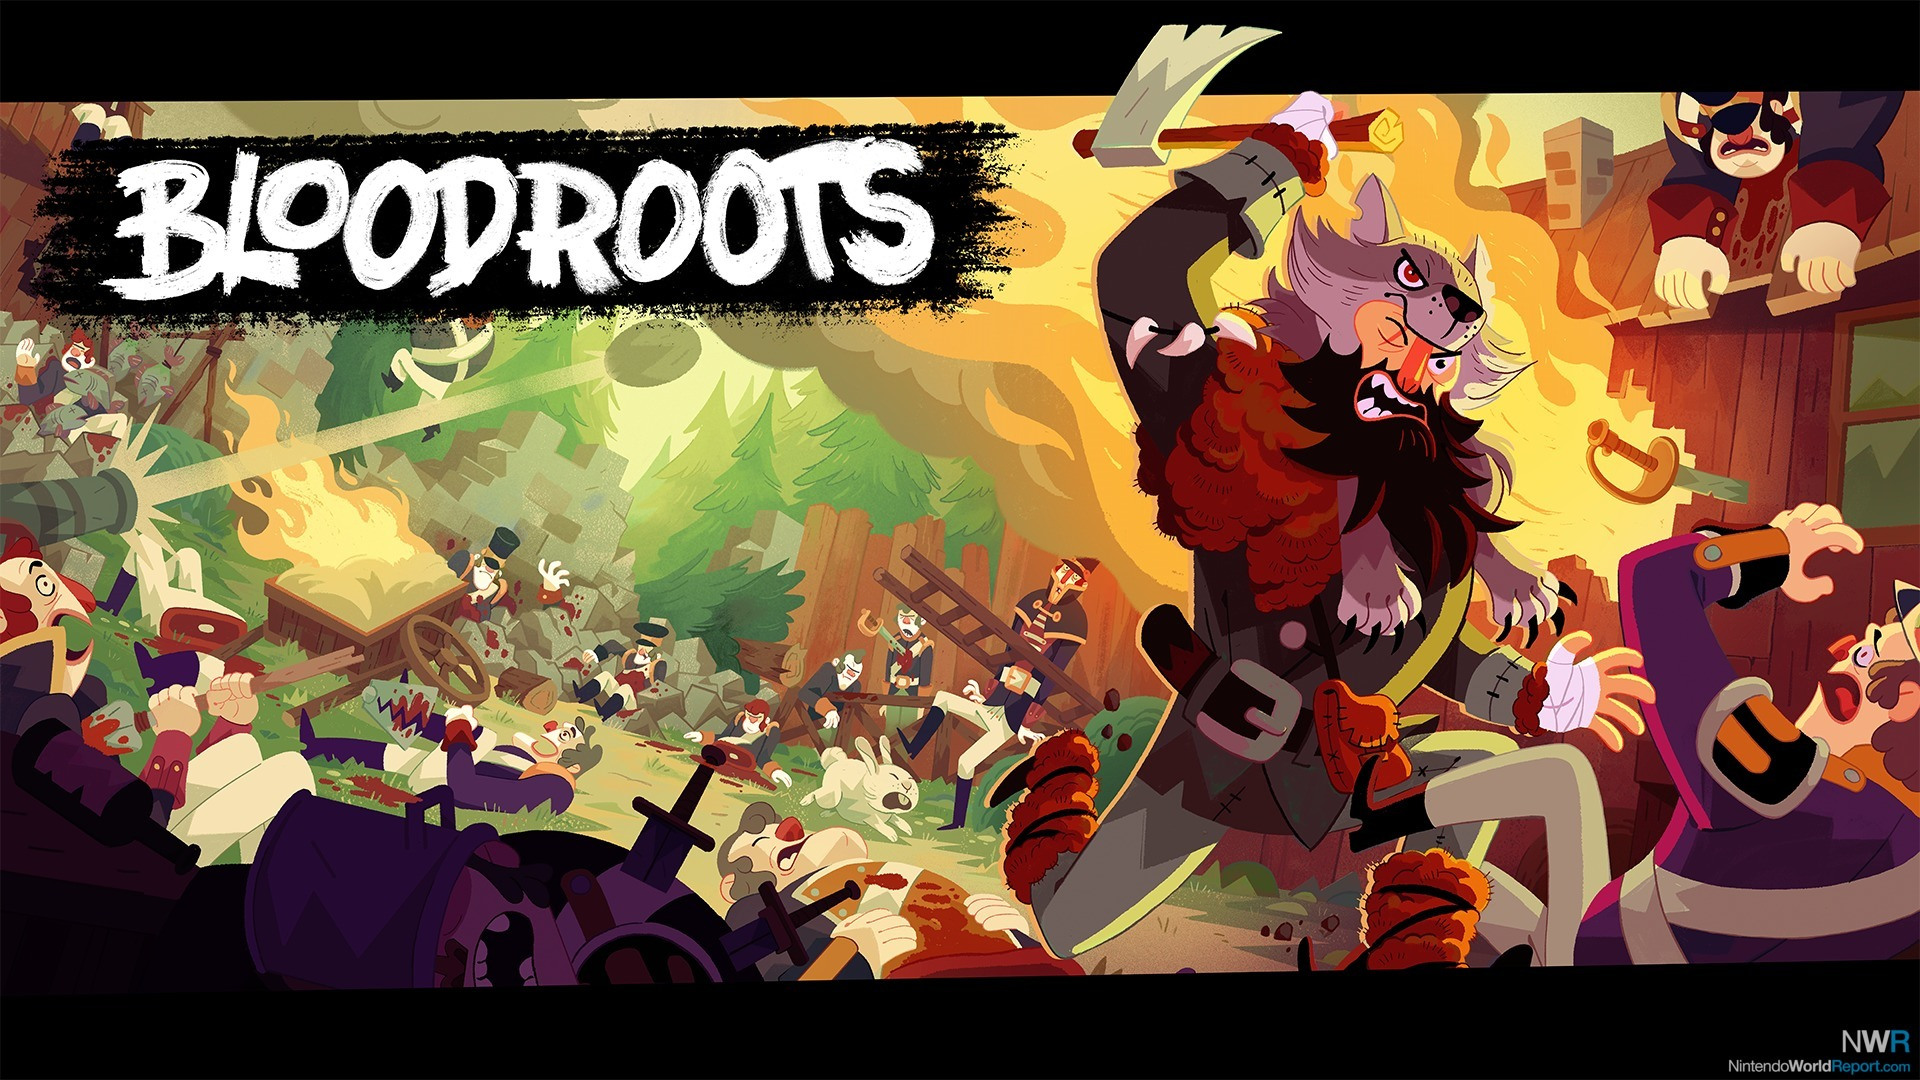 Bloodroots launches February 28